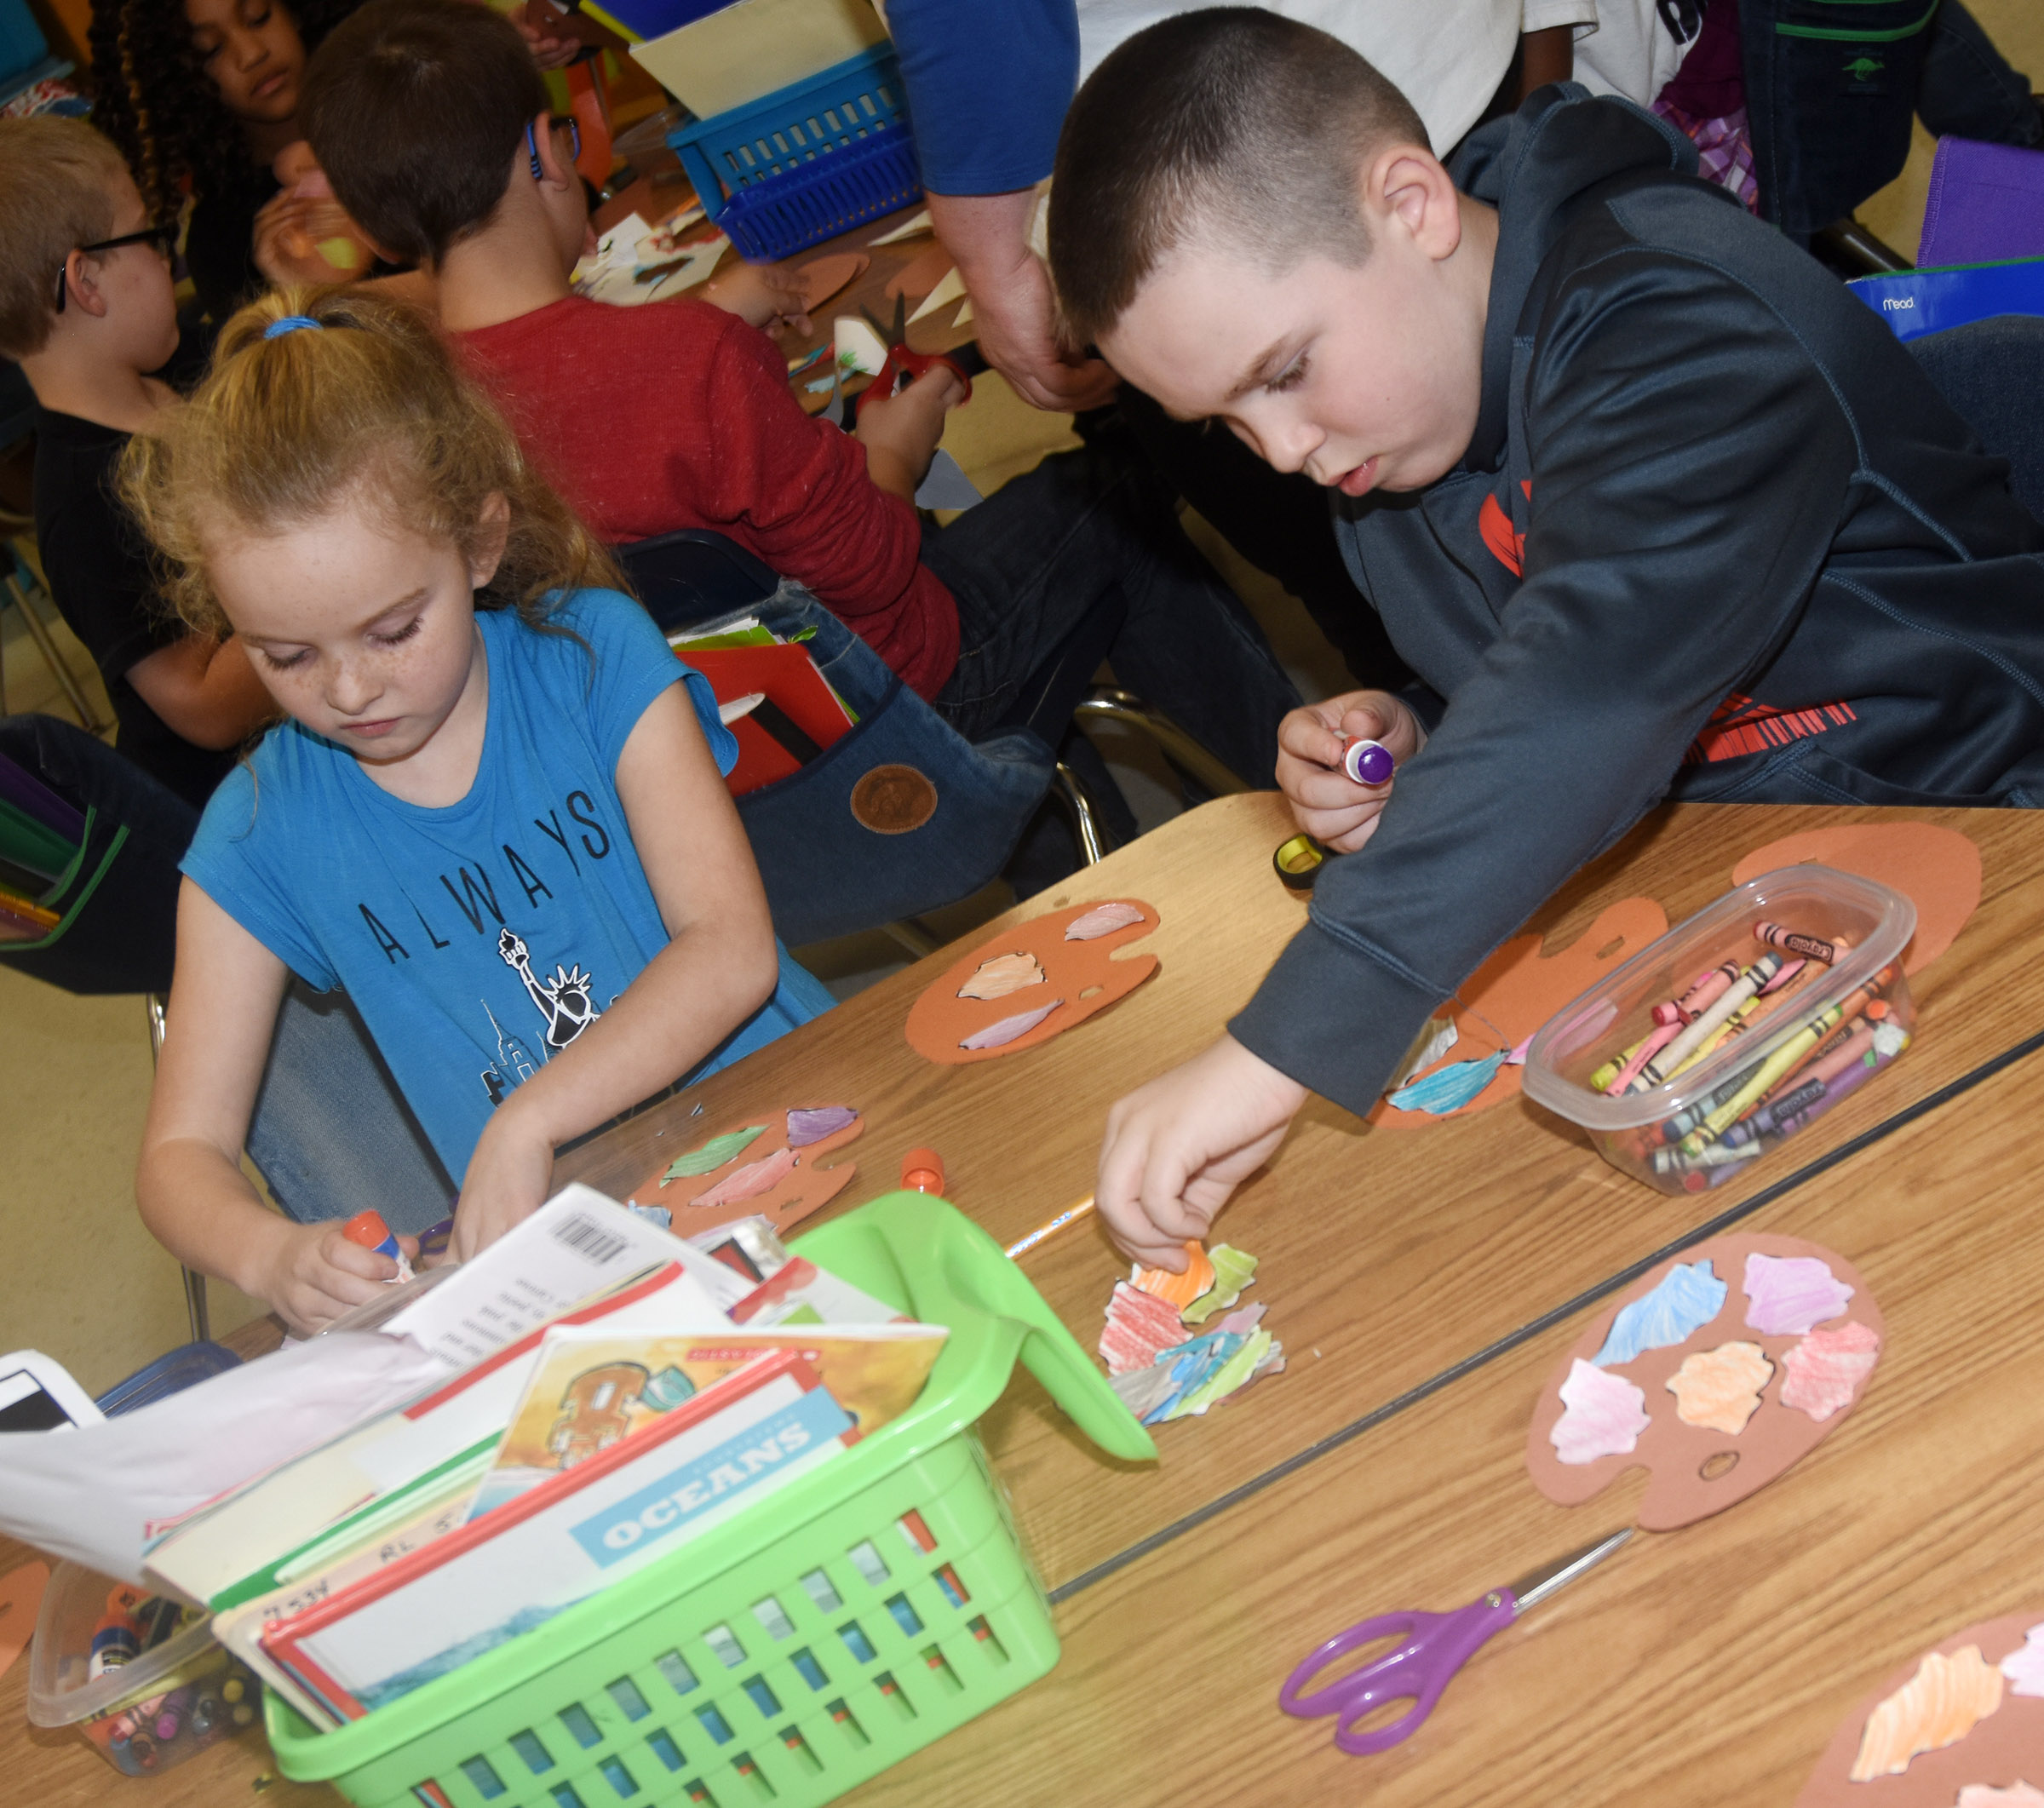 CES second-graders Katelynn Vest, at left, and Colton Maggard glue their paint splotches on their prefix palates.